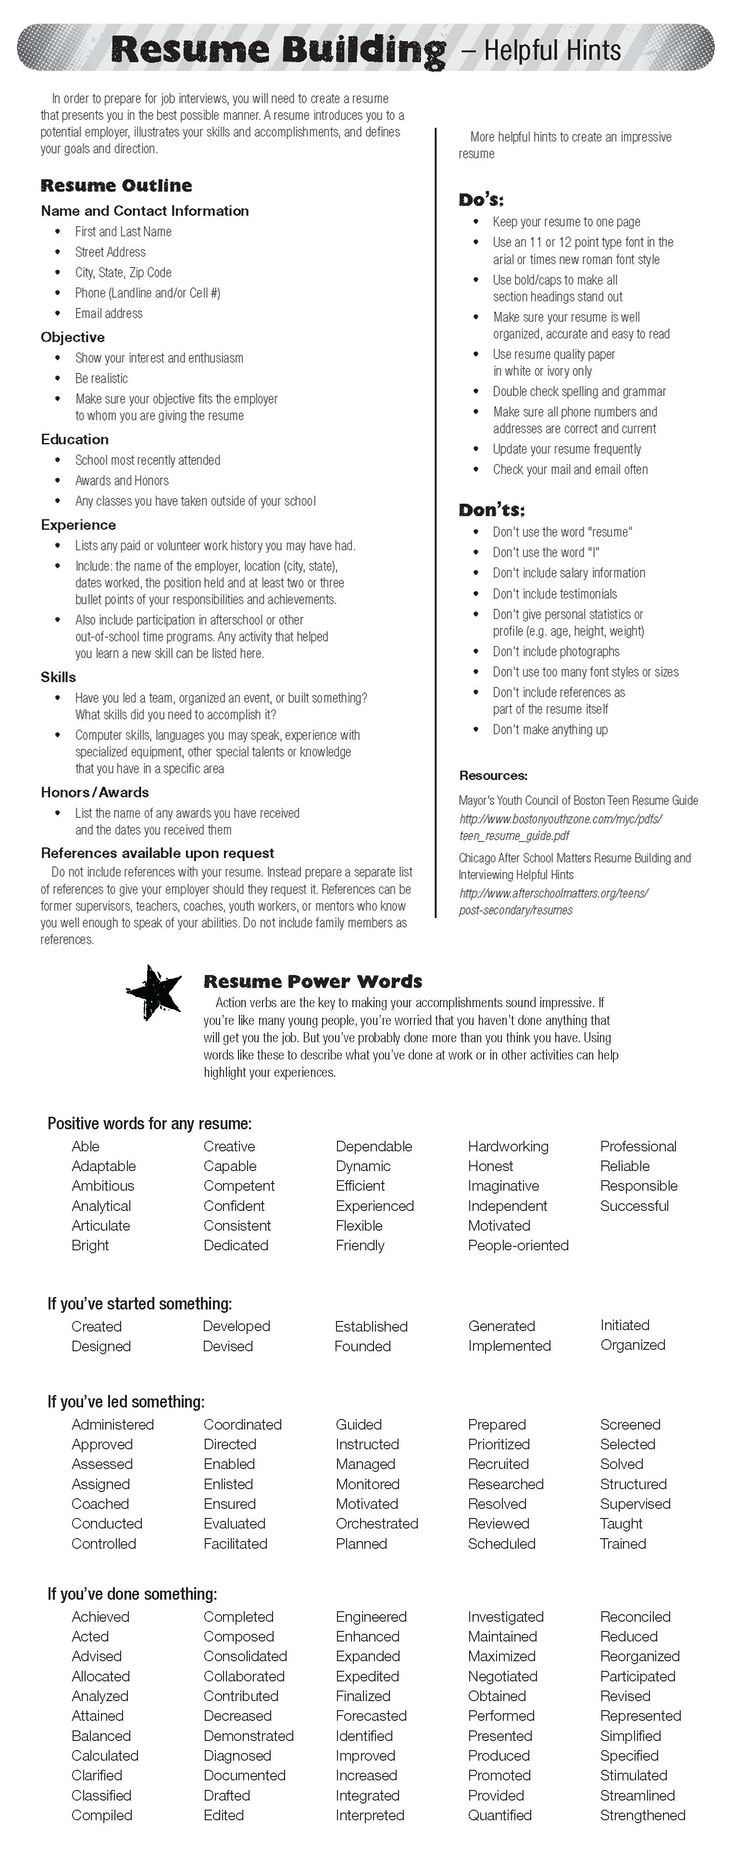 Picnictoimpeachus  Picturesque  Ideas About Resume On Pinterest  Cv Format Resume Cv And  With Luxury  Ideas About Resume On Pinterest  Cv Format Resume Cv And Resume Templates With Amazing Datastage Resume Also Resume Technology Skills In Addition Download Word Resume Template And Kick Ass Resume As Well As Free Resume Apps Additionally General Manager Restaurant Resume From Pinterestcom With Picnictoimpeachus  Luxury  Ideas About Resume On Pinterest  Cv Format Resume Cv And  With Amazing  Ideas About Resume On Pinterest  Cv Format Resume Cv And Resume Templates And Picturesque Datastage Resume Also Resume Technology Skills In Addition Download Word Resume Template From Pinterestcom